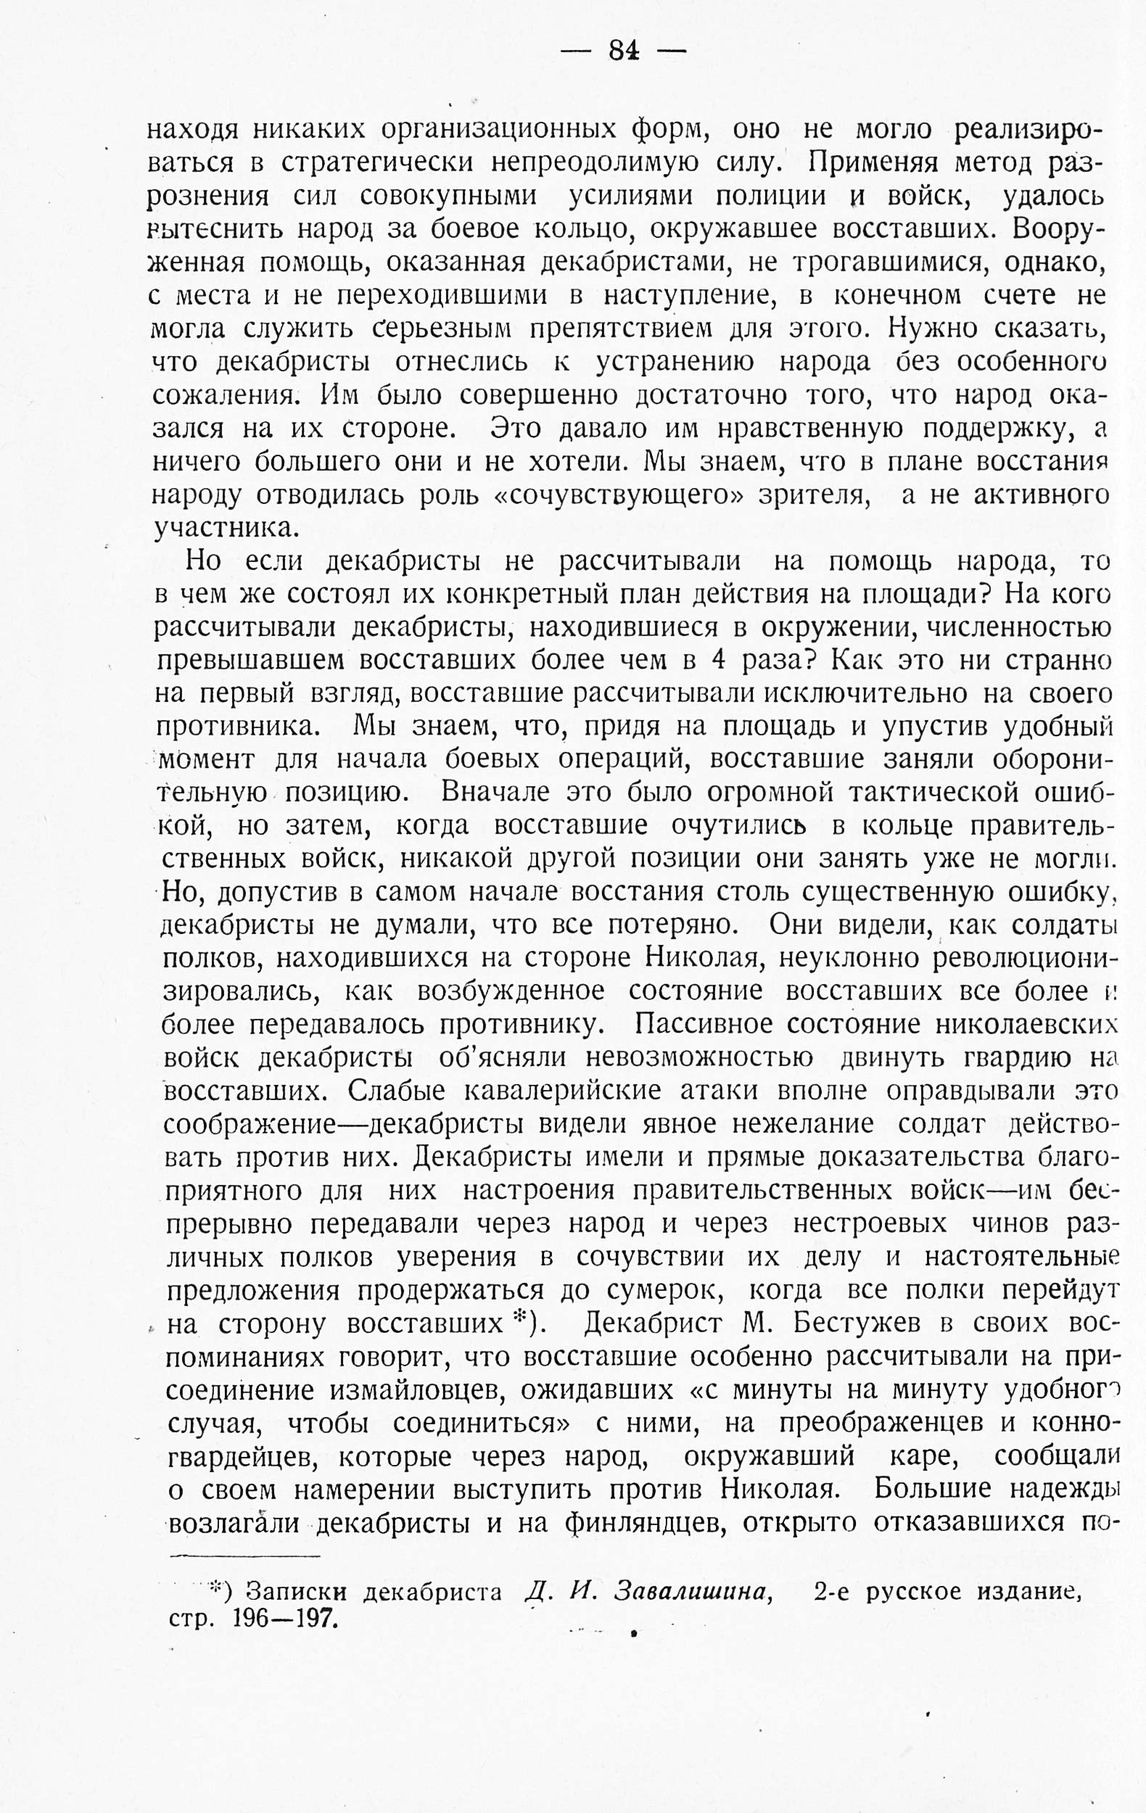 http://elib.shpl.ru/pages/543334/zooms/7